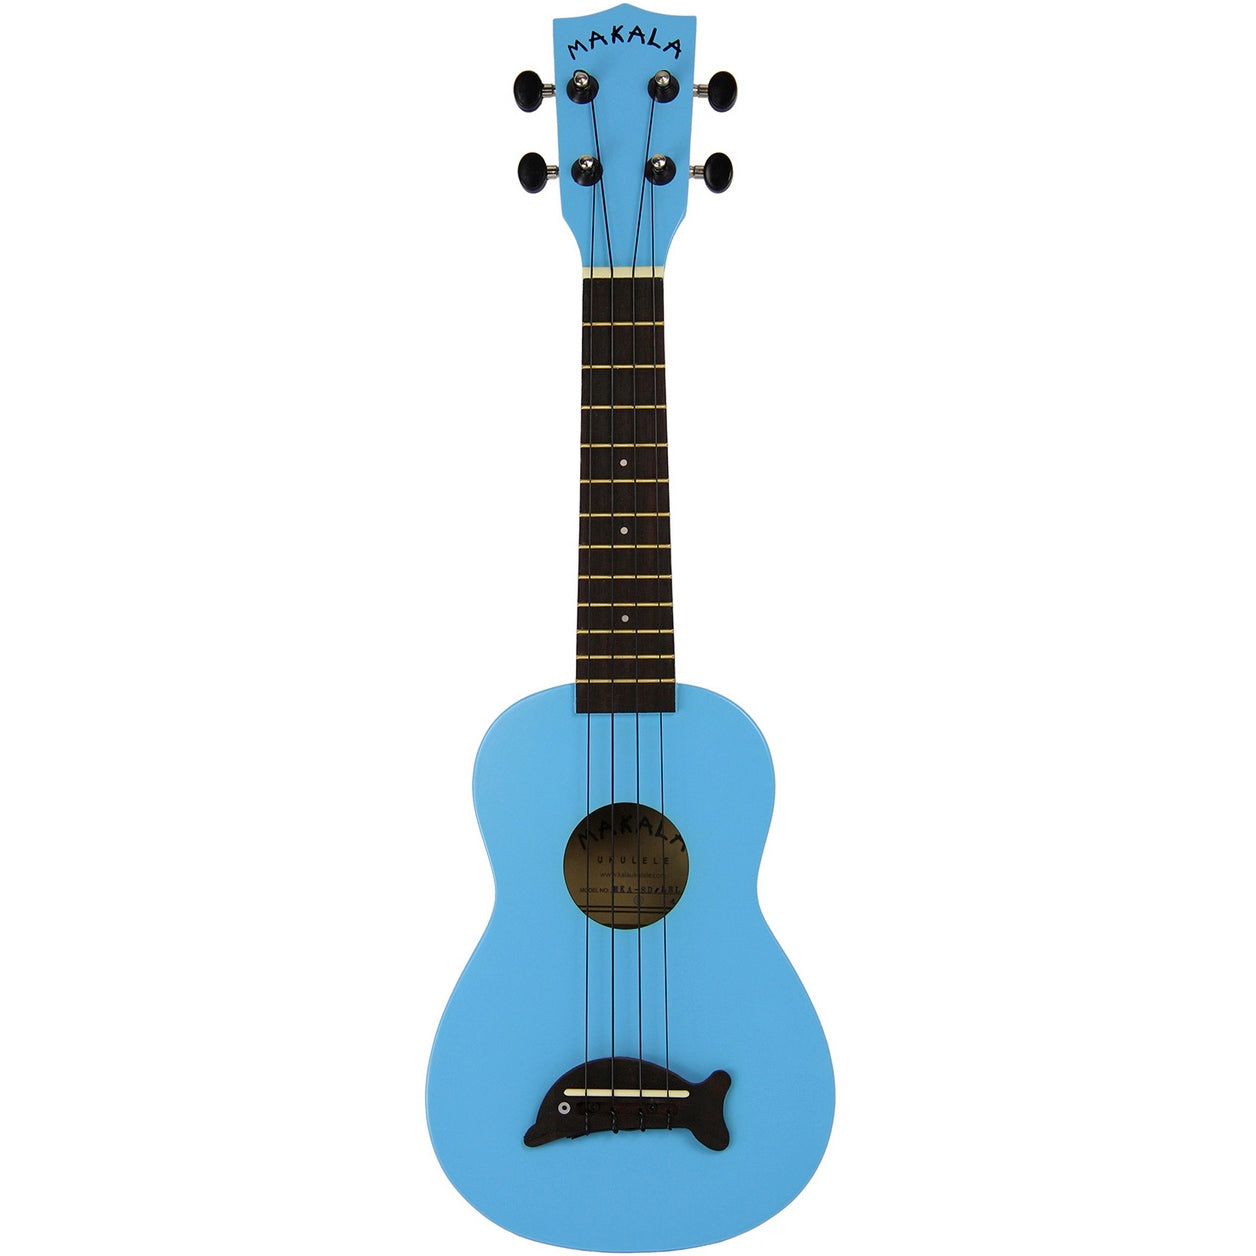 Kala MK-SD/LBL Makala Light Blue Soprano Dolphin | Music Experience | Shop Online | South Africa